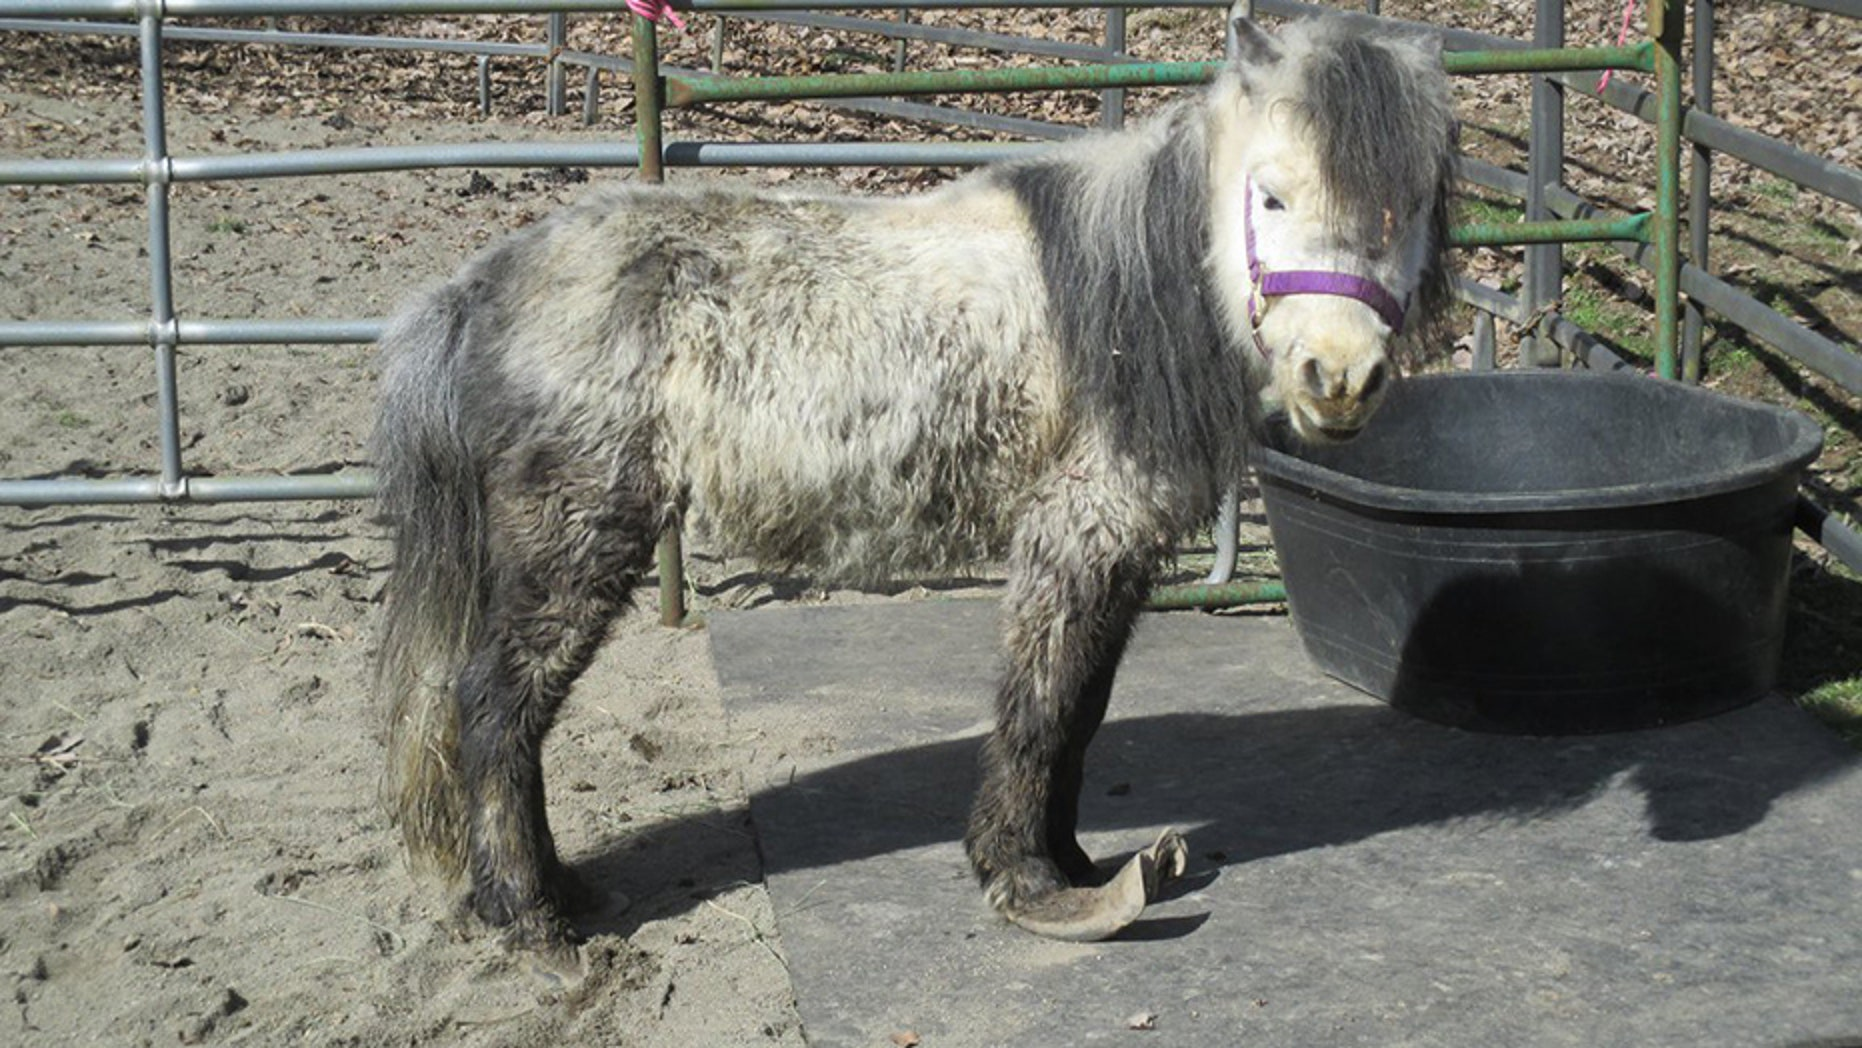 Nearly two dozen miniature horses were among the more than 150 animals rescued from a backyard farm in Washington.